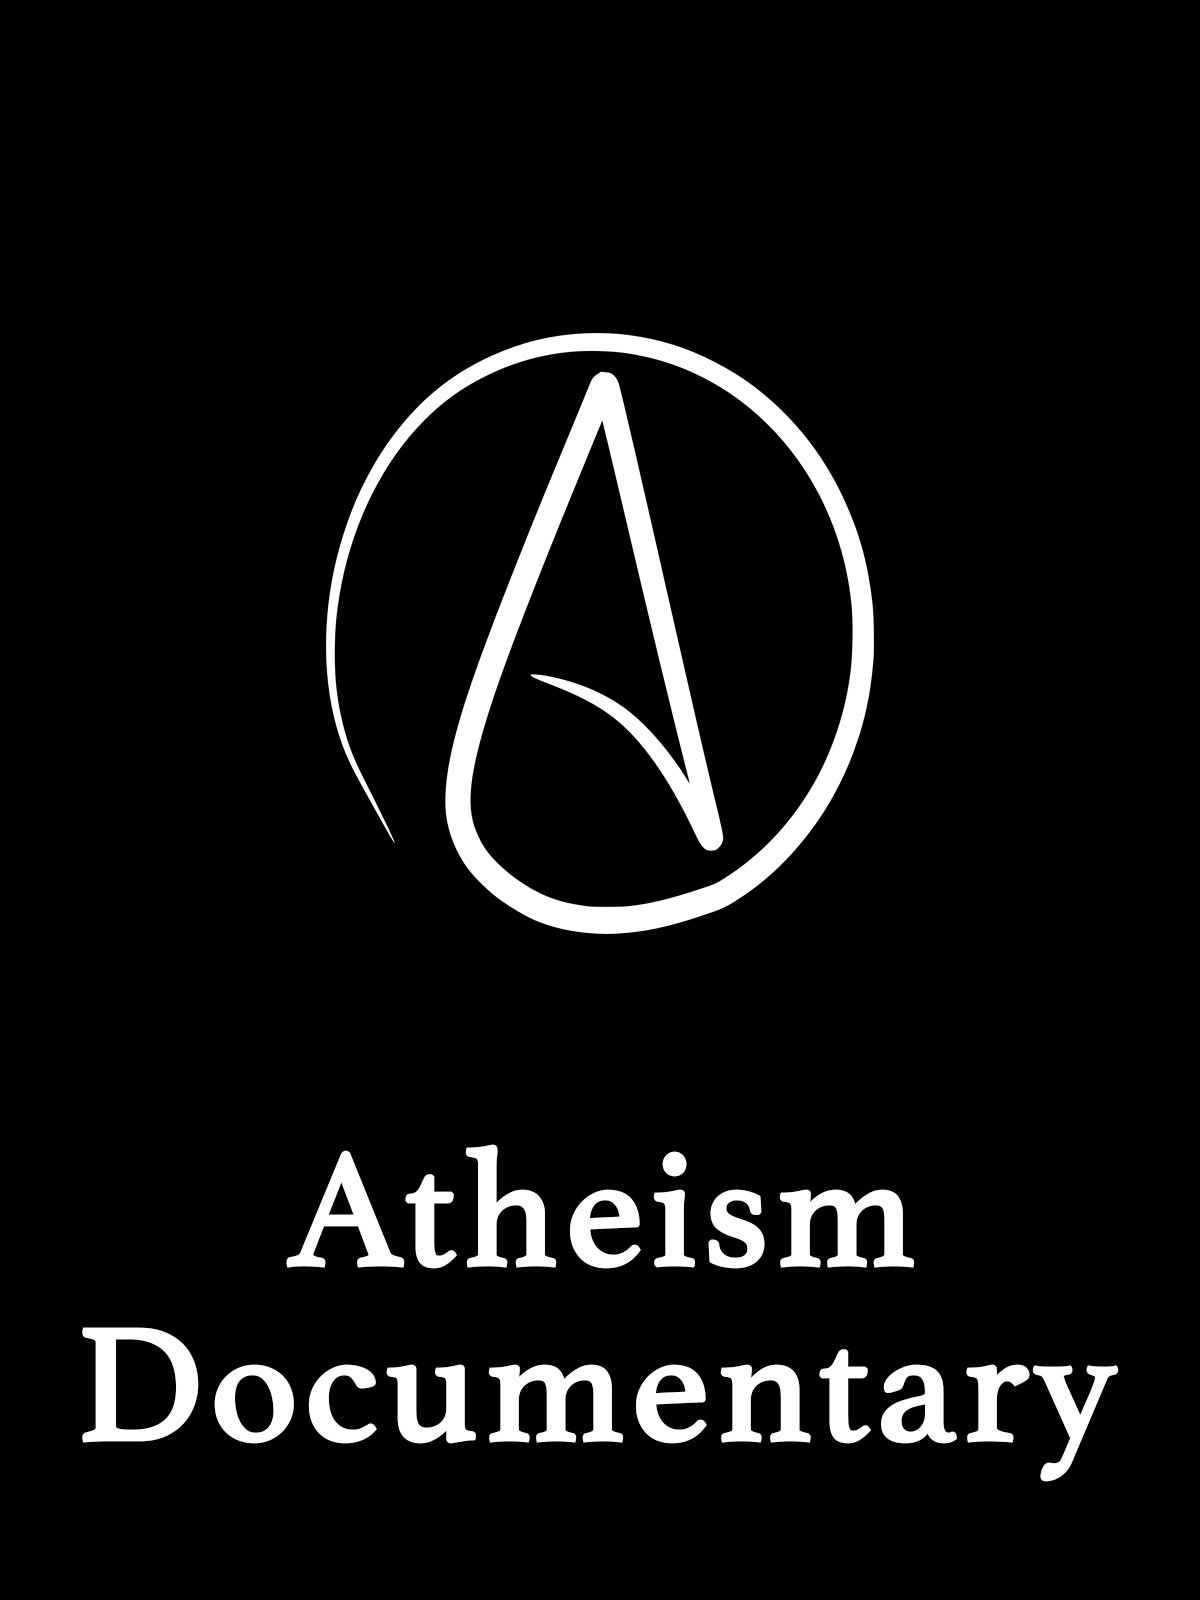 Atheism Documentary